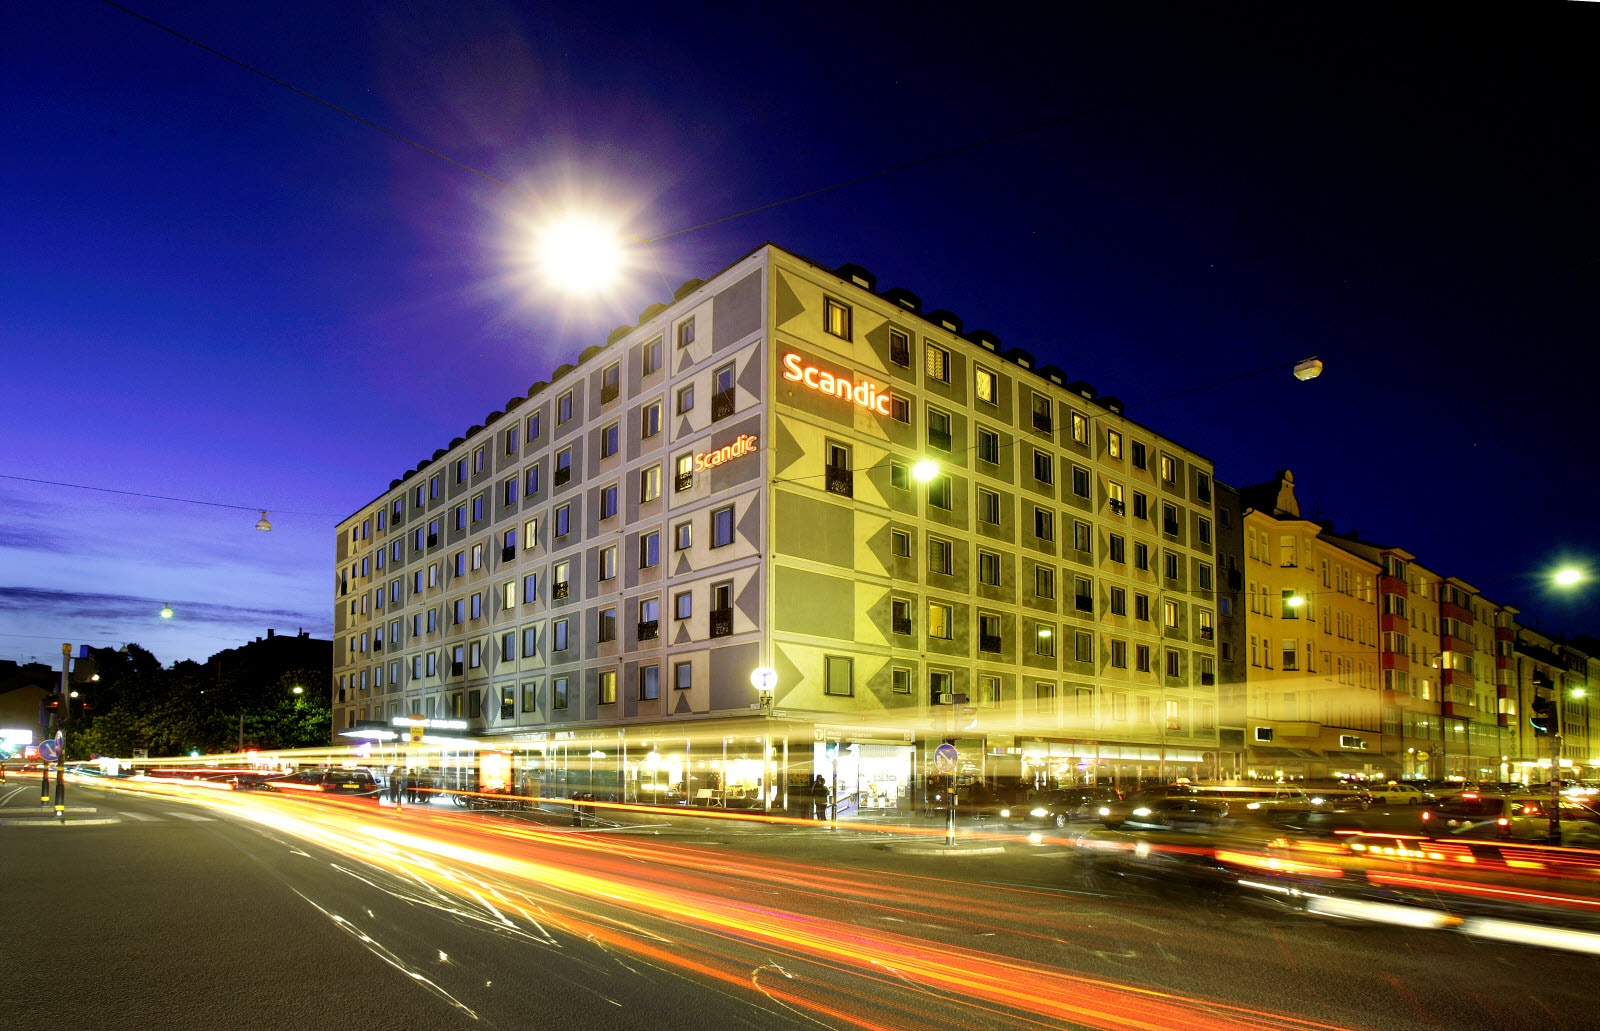 Exterior Facade Hotels In Stockholm